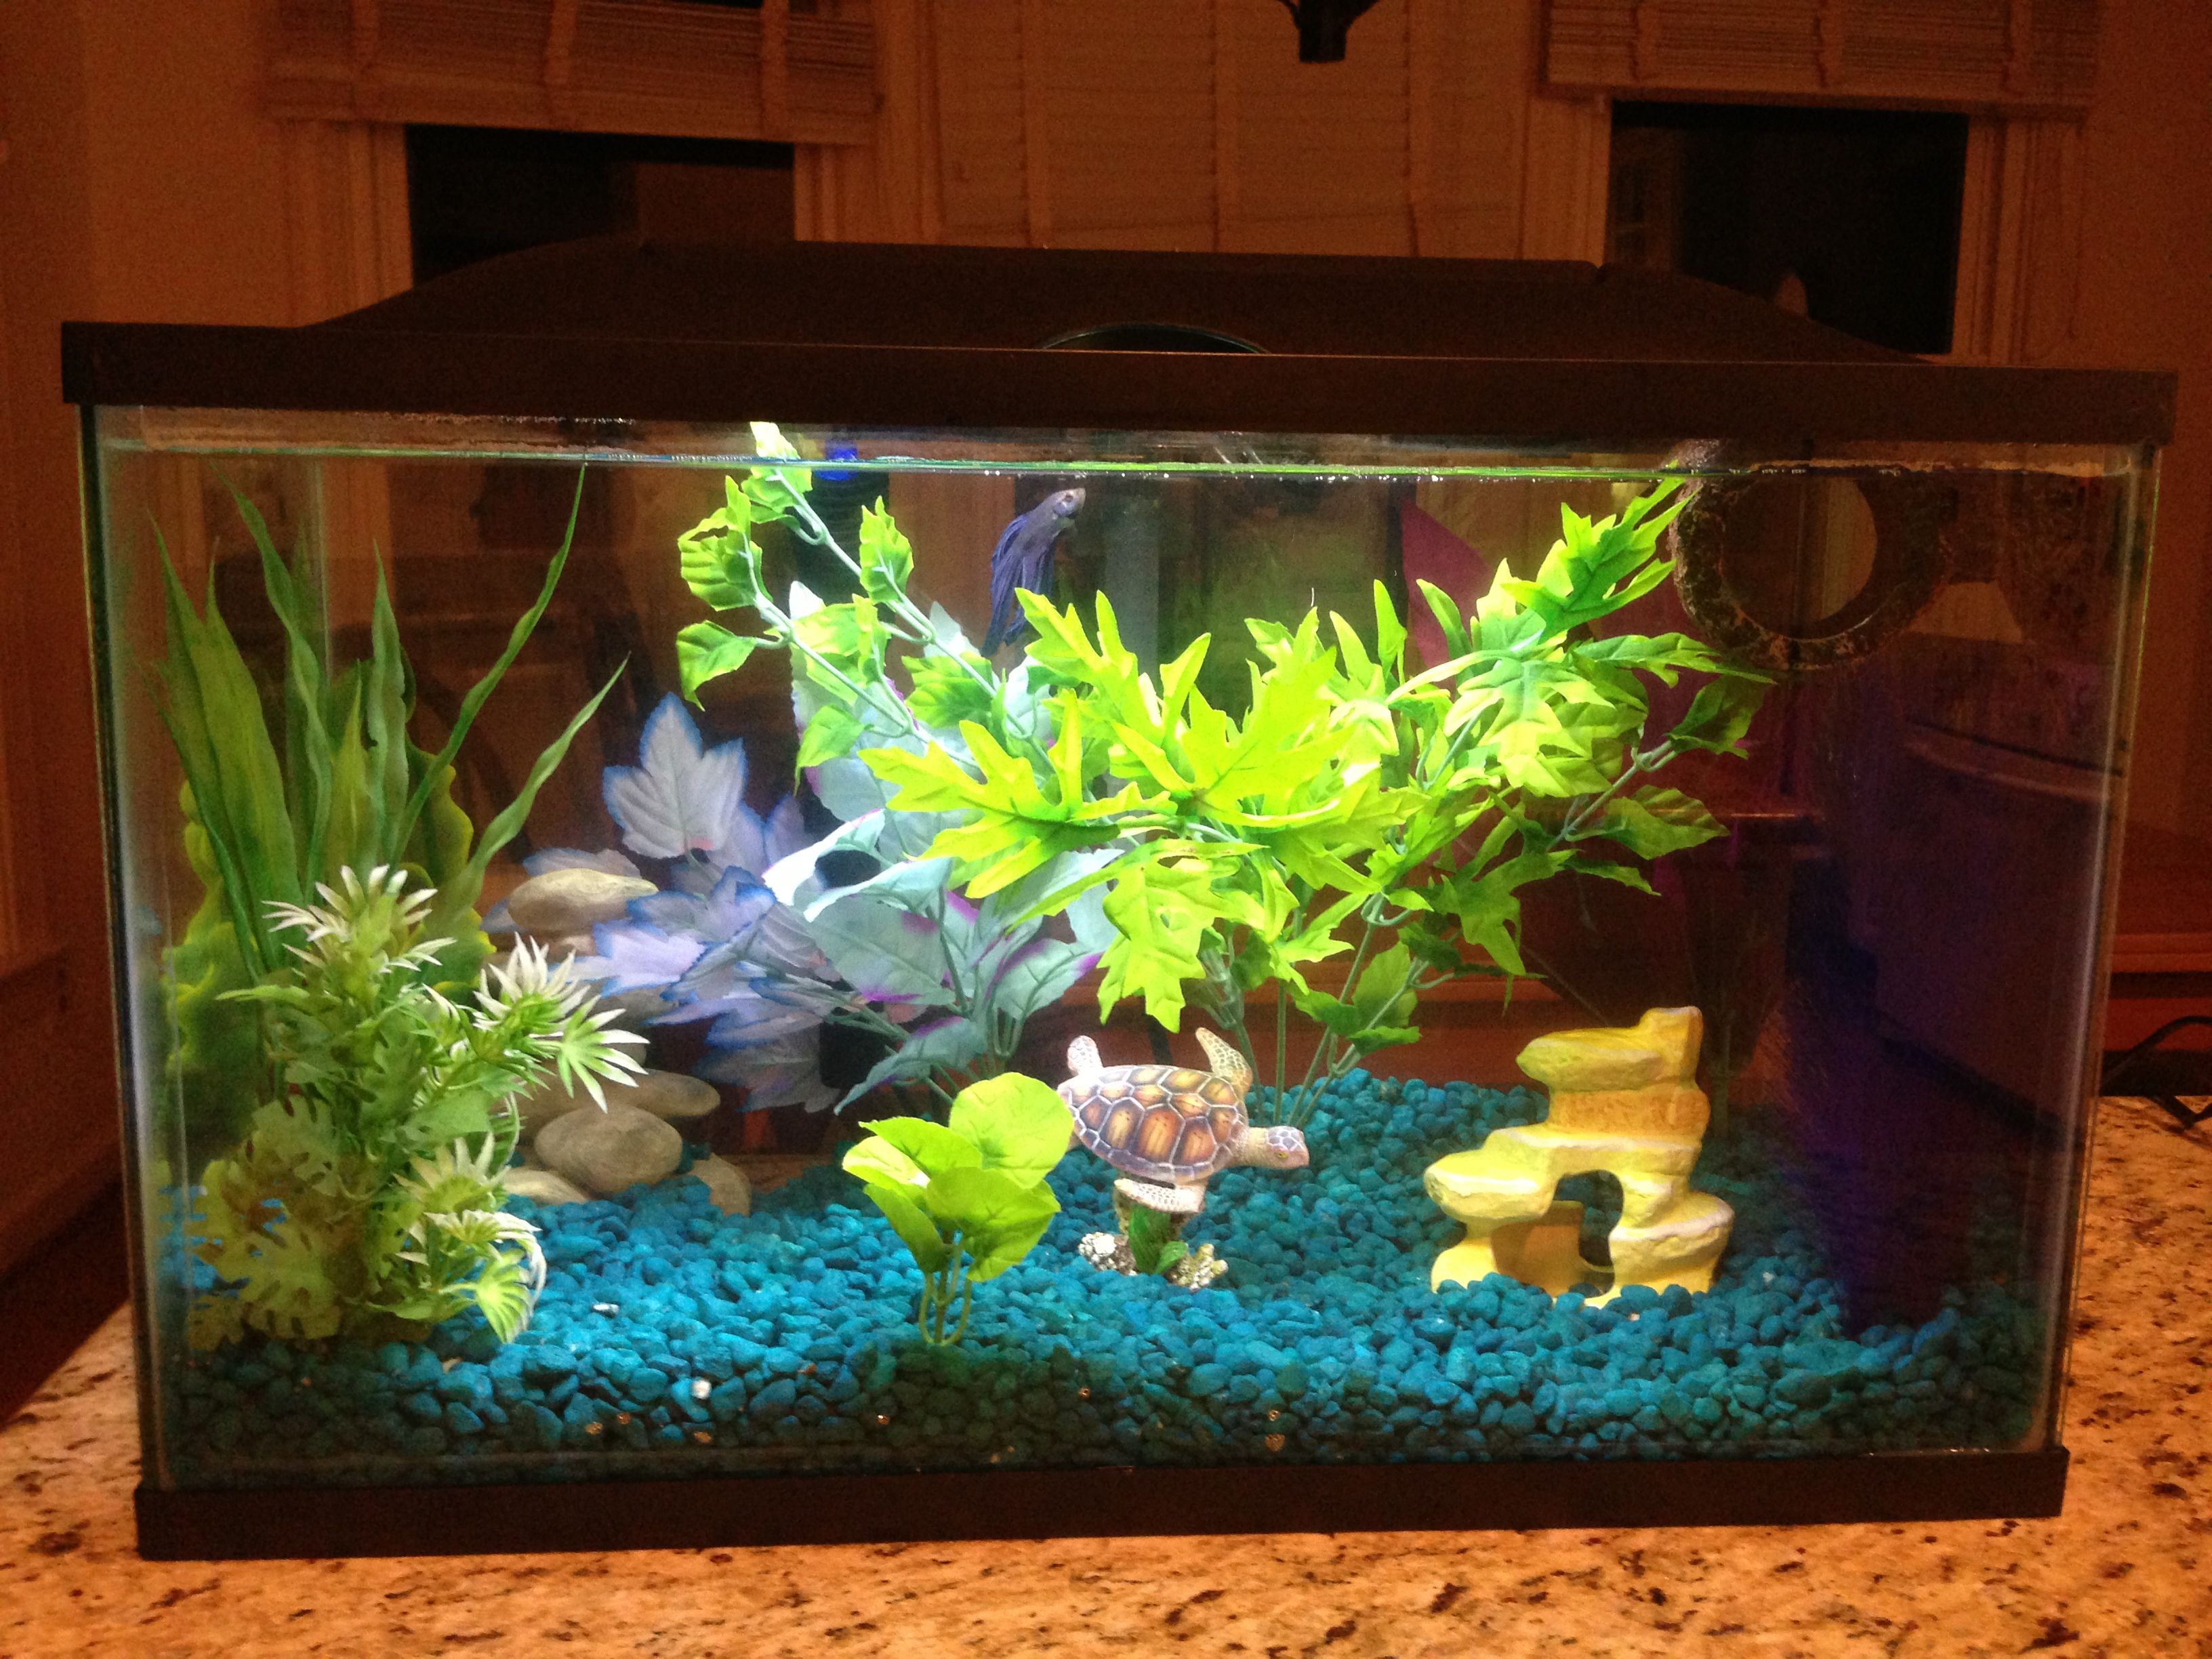 Fish tank decorations 10 gallon diy betta fish tank for Betta fish tank ideas